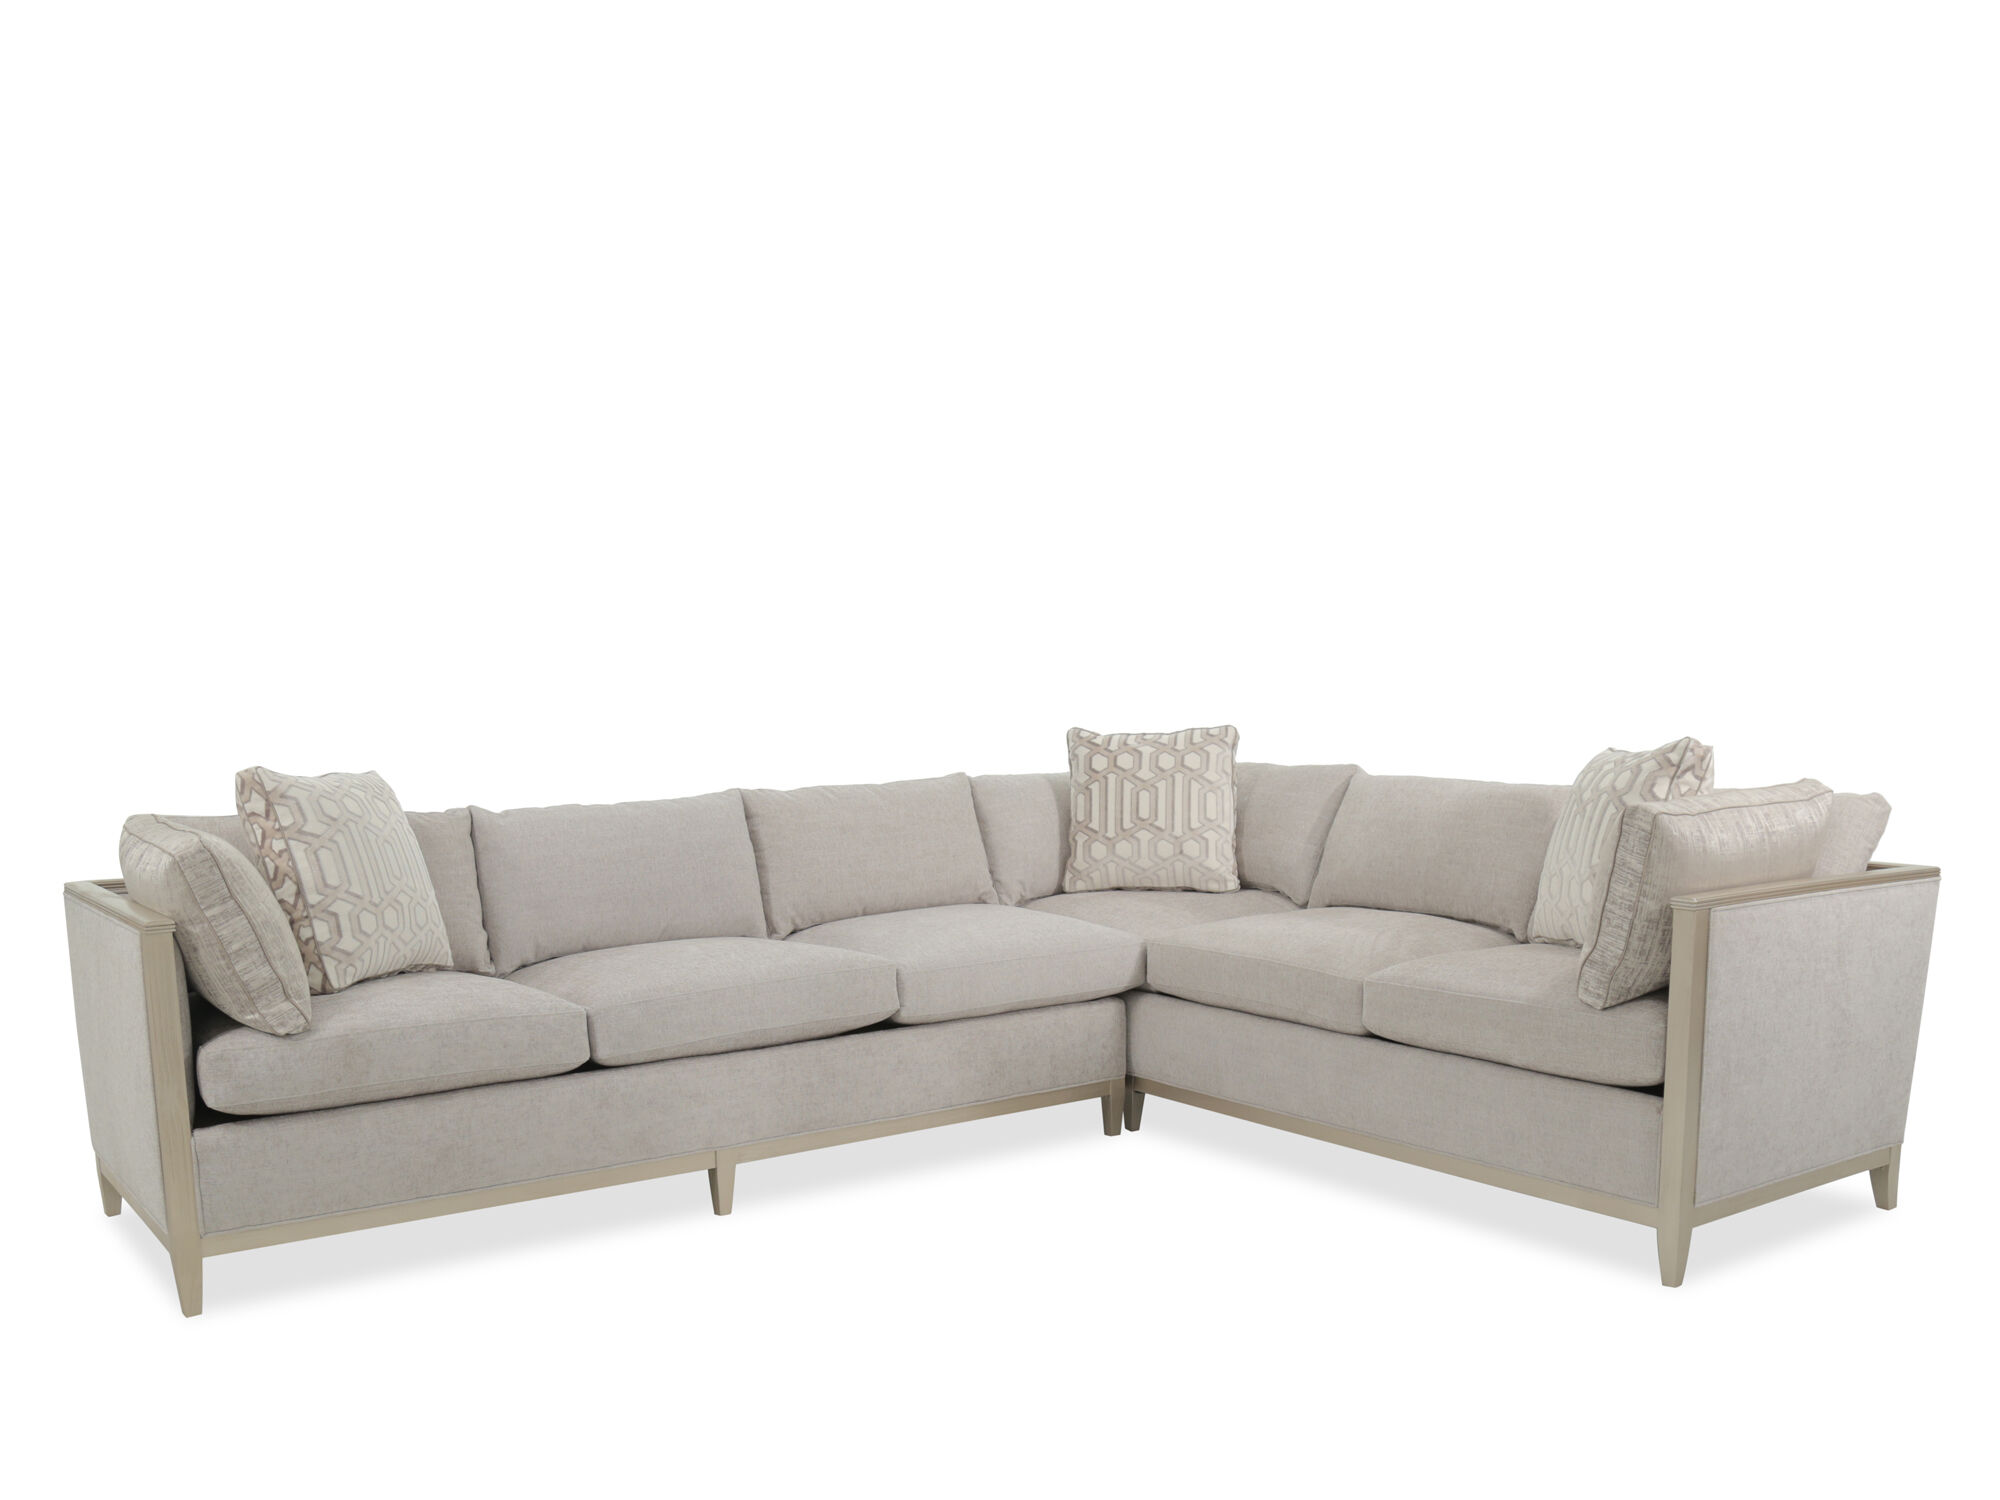 A.R.T. Furniture Cityscapes Astor Crystal Two Piece Sectional Sofa